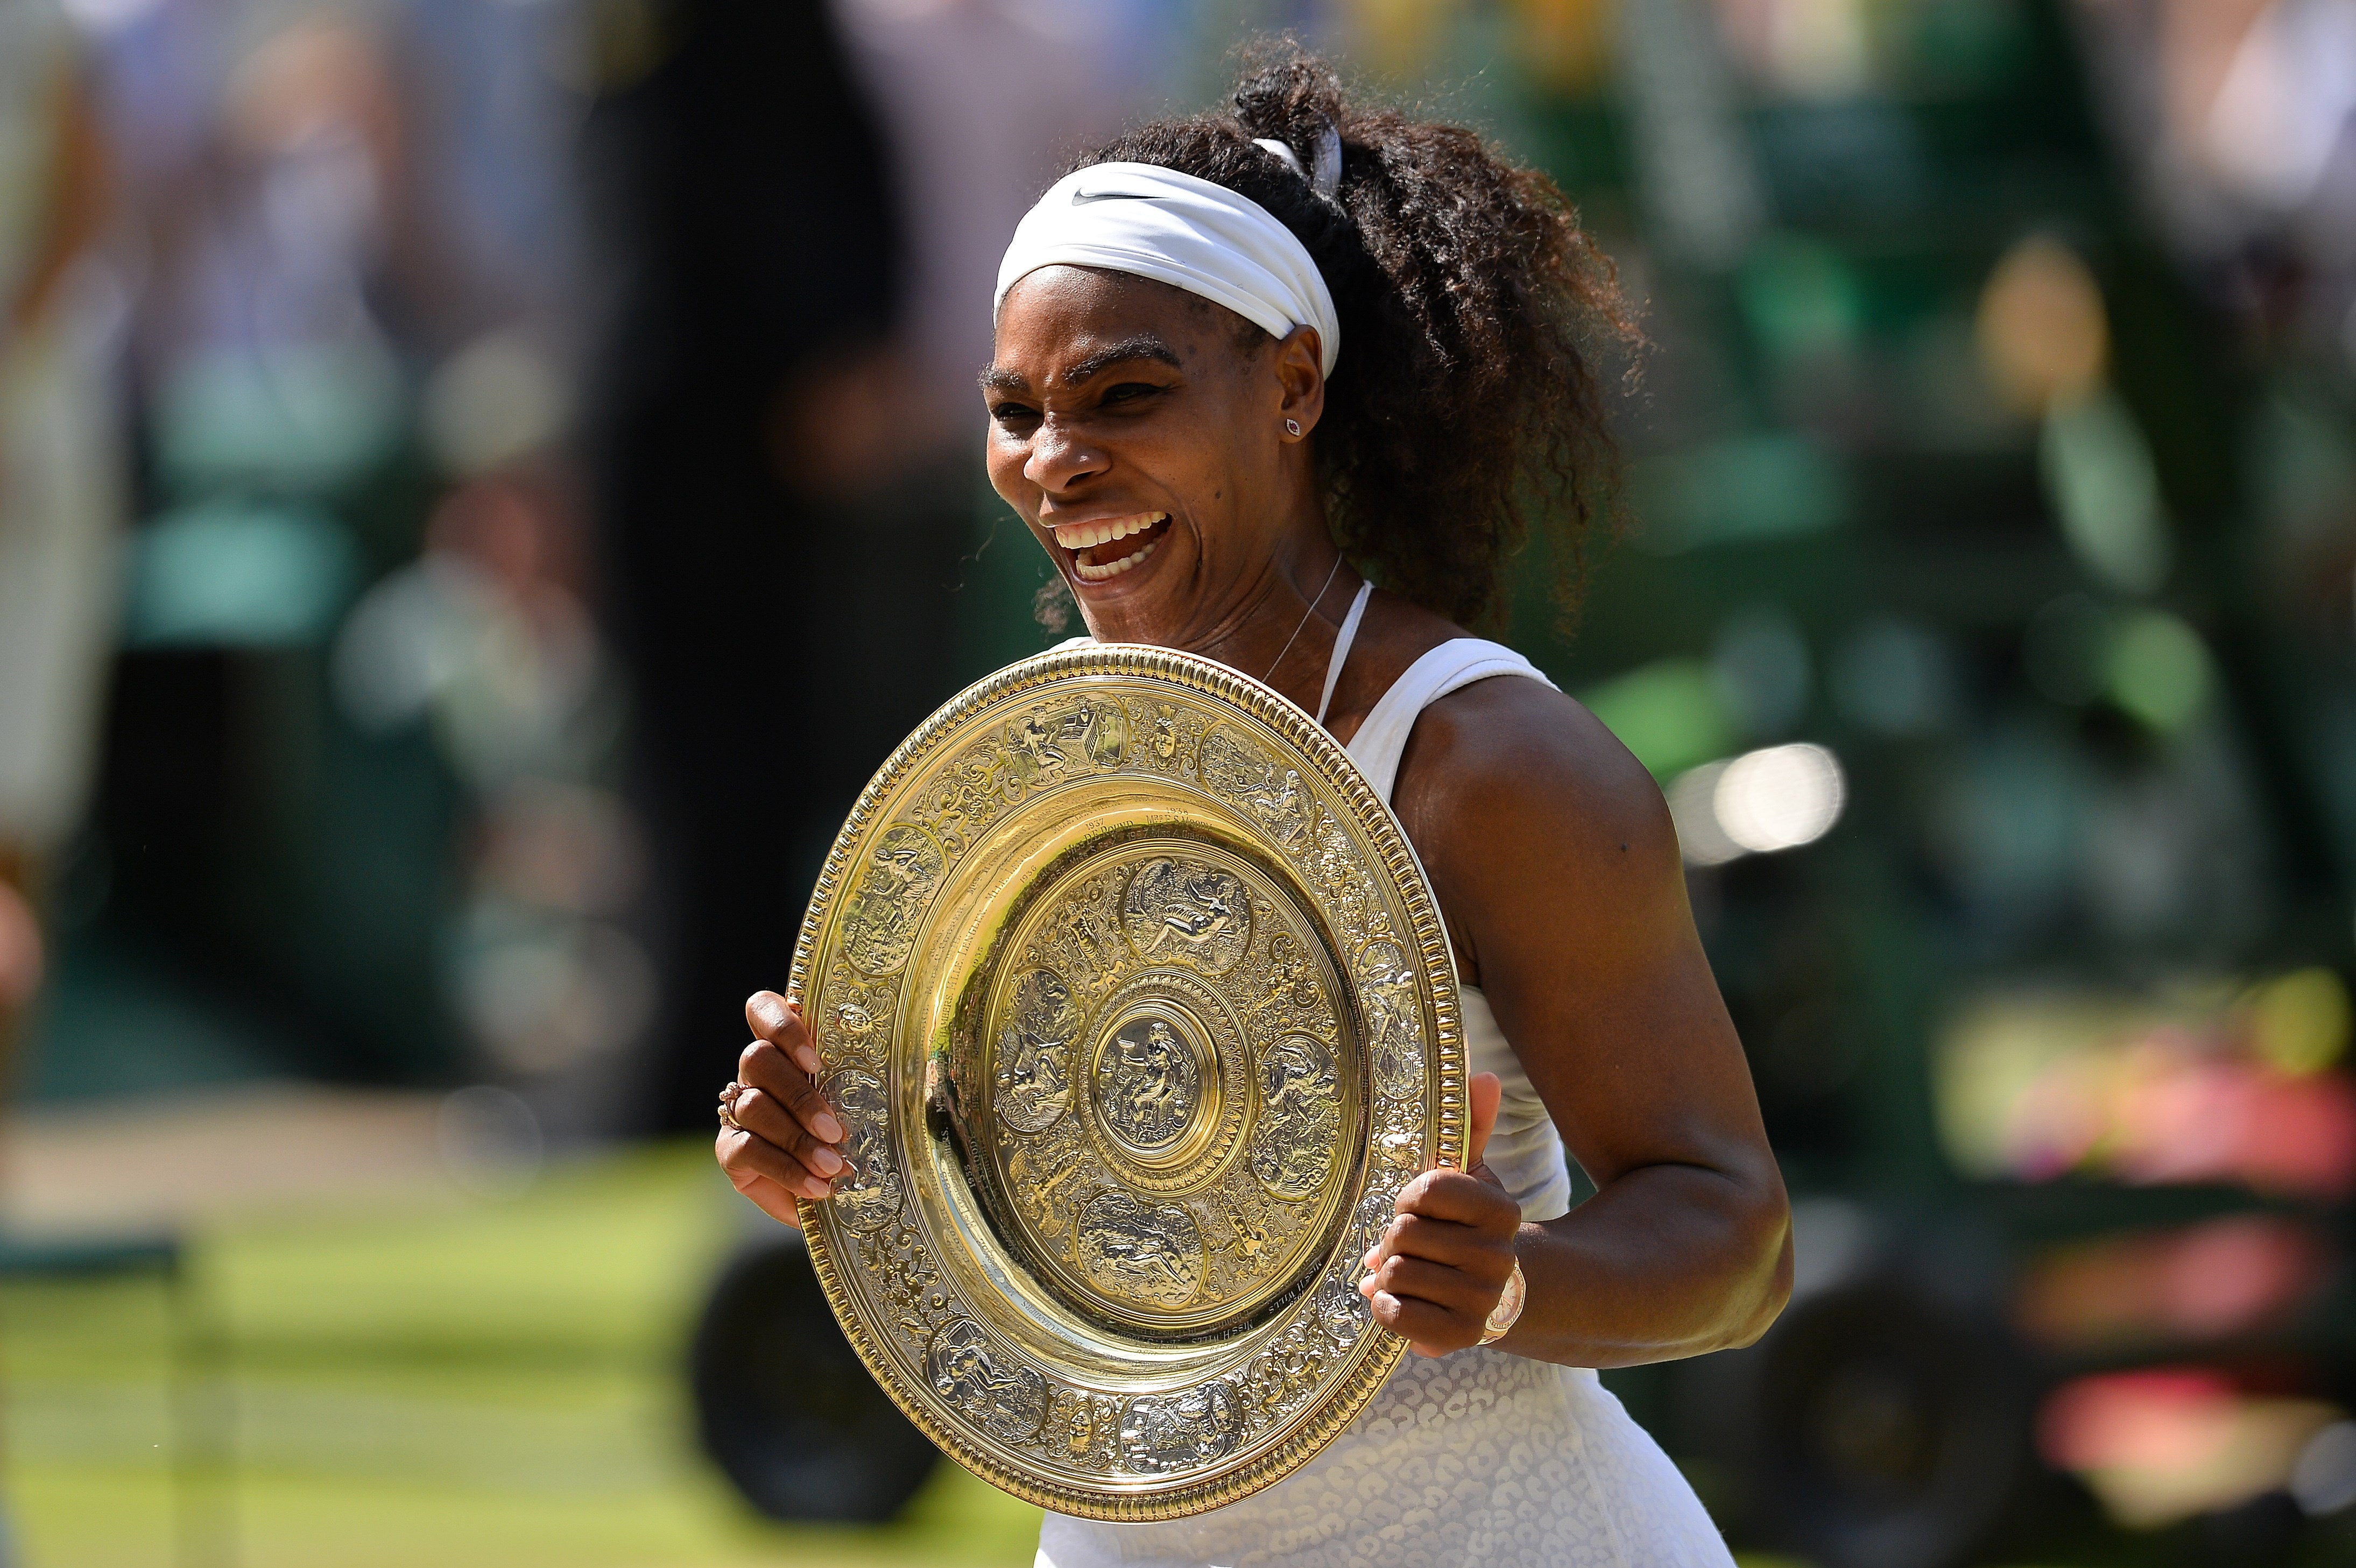 Serena Williams celebrates with the winner's trophy after her women's singles final victory over Spain's Garbine Muguruza at the 2015 Wimbledon Championships in London, on July 11, 2015.